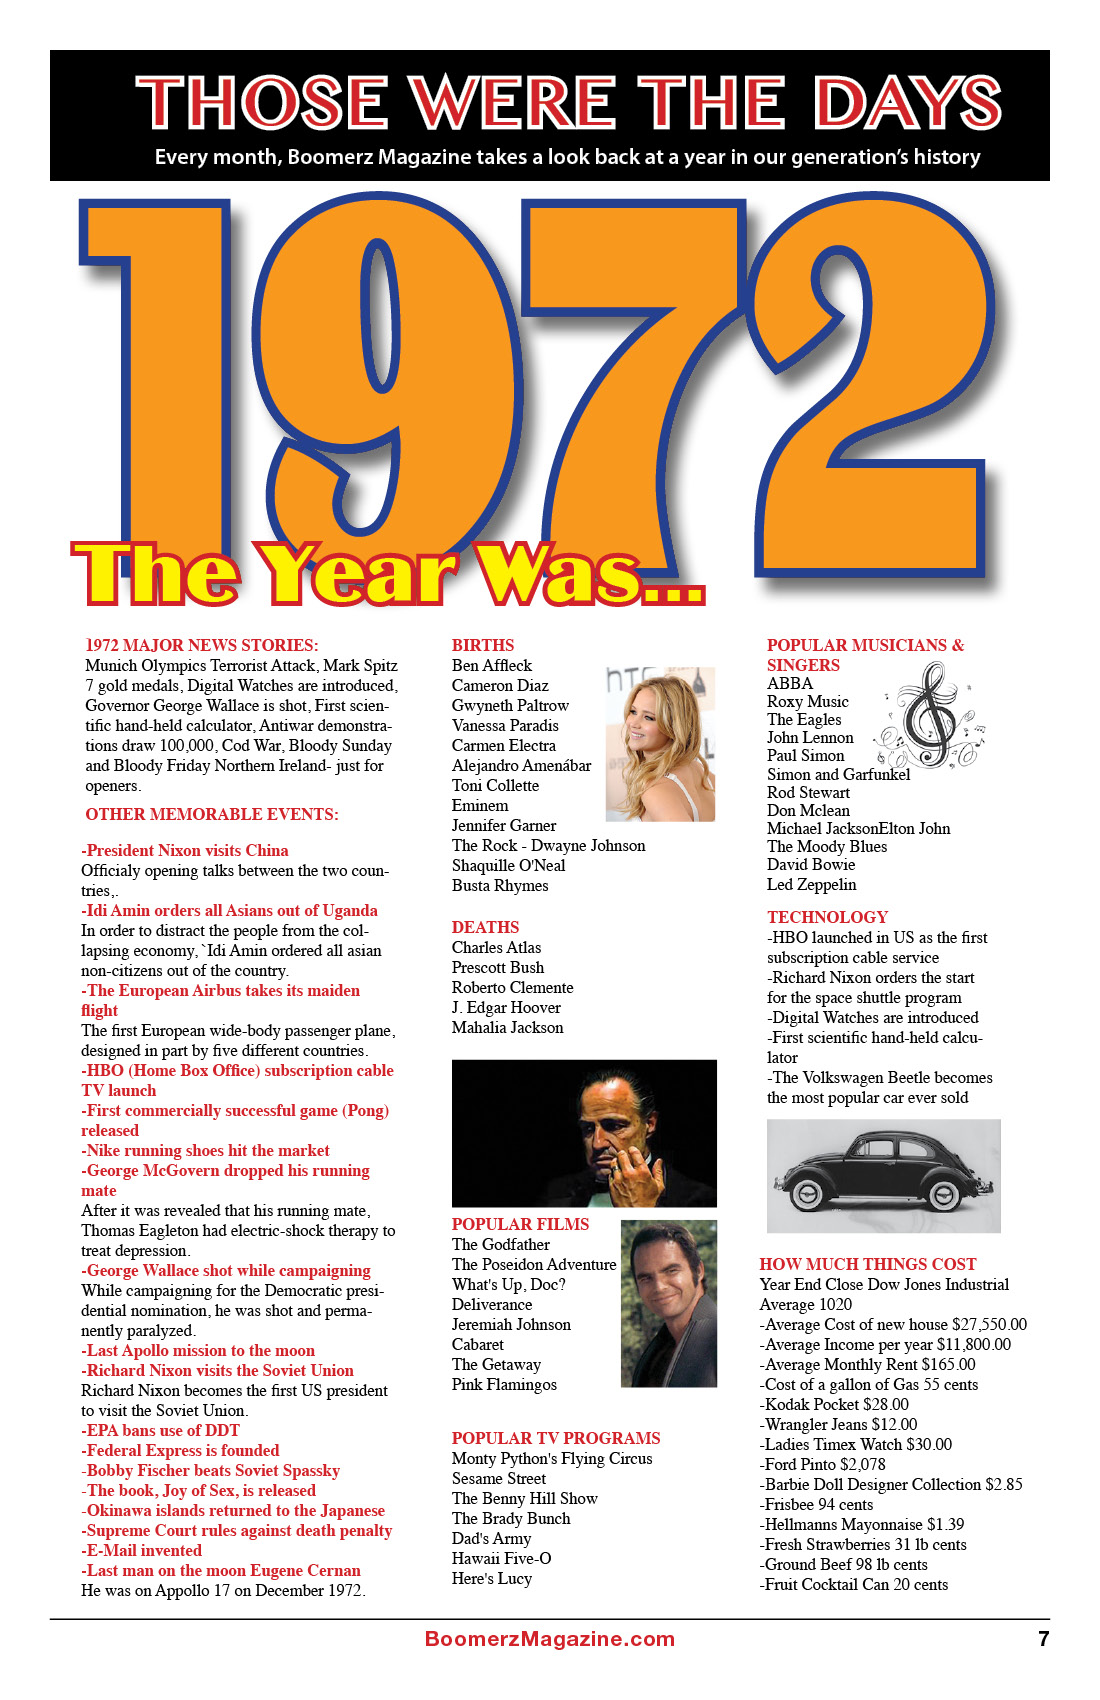 2018 October Boomerz Magazine Page 7 Those Were The Days The year was 1972